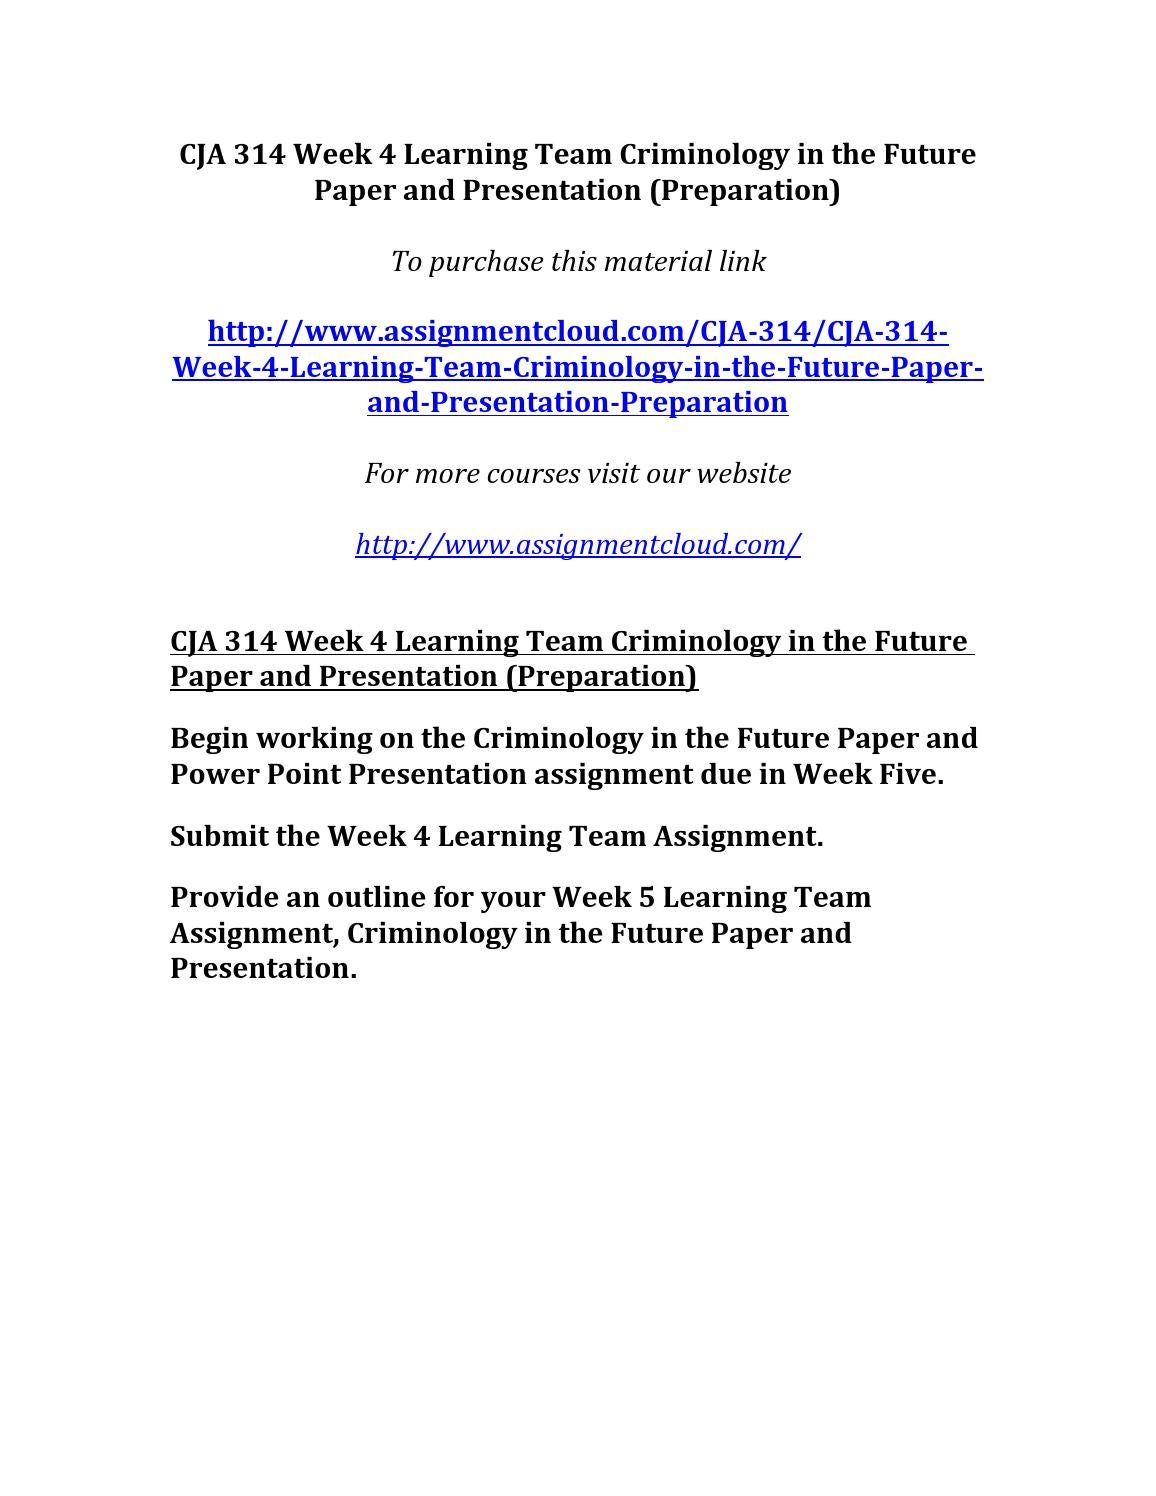 criminology in the future paper and presentation Cja 314 week 5 team paper criminology in the future answer cja 314 week 5 team paper criminology in the future answer criminology in the future paper and presentation.